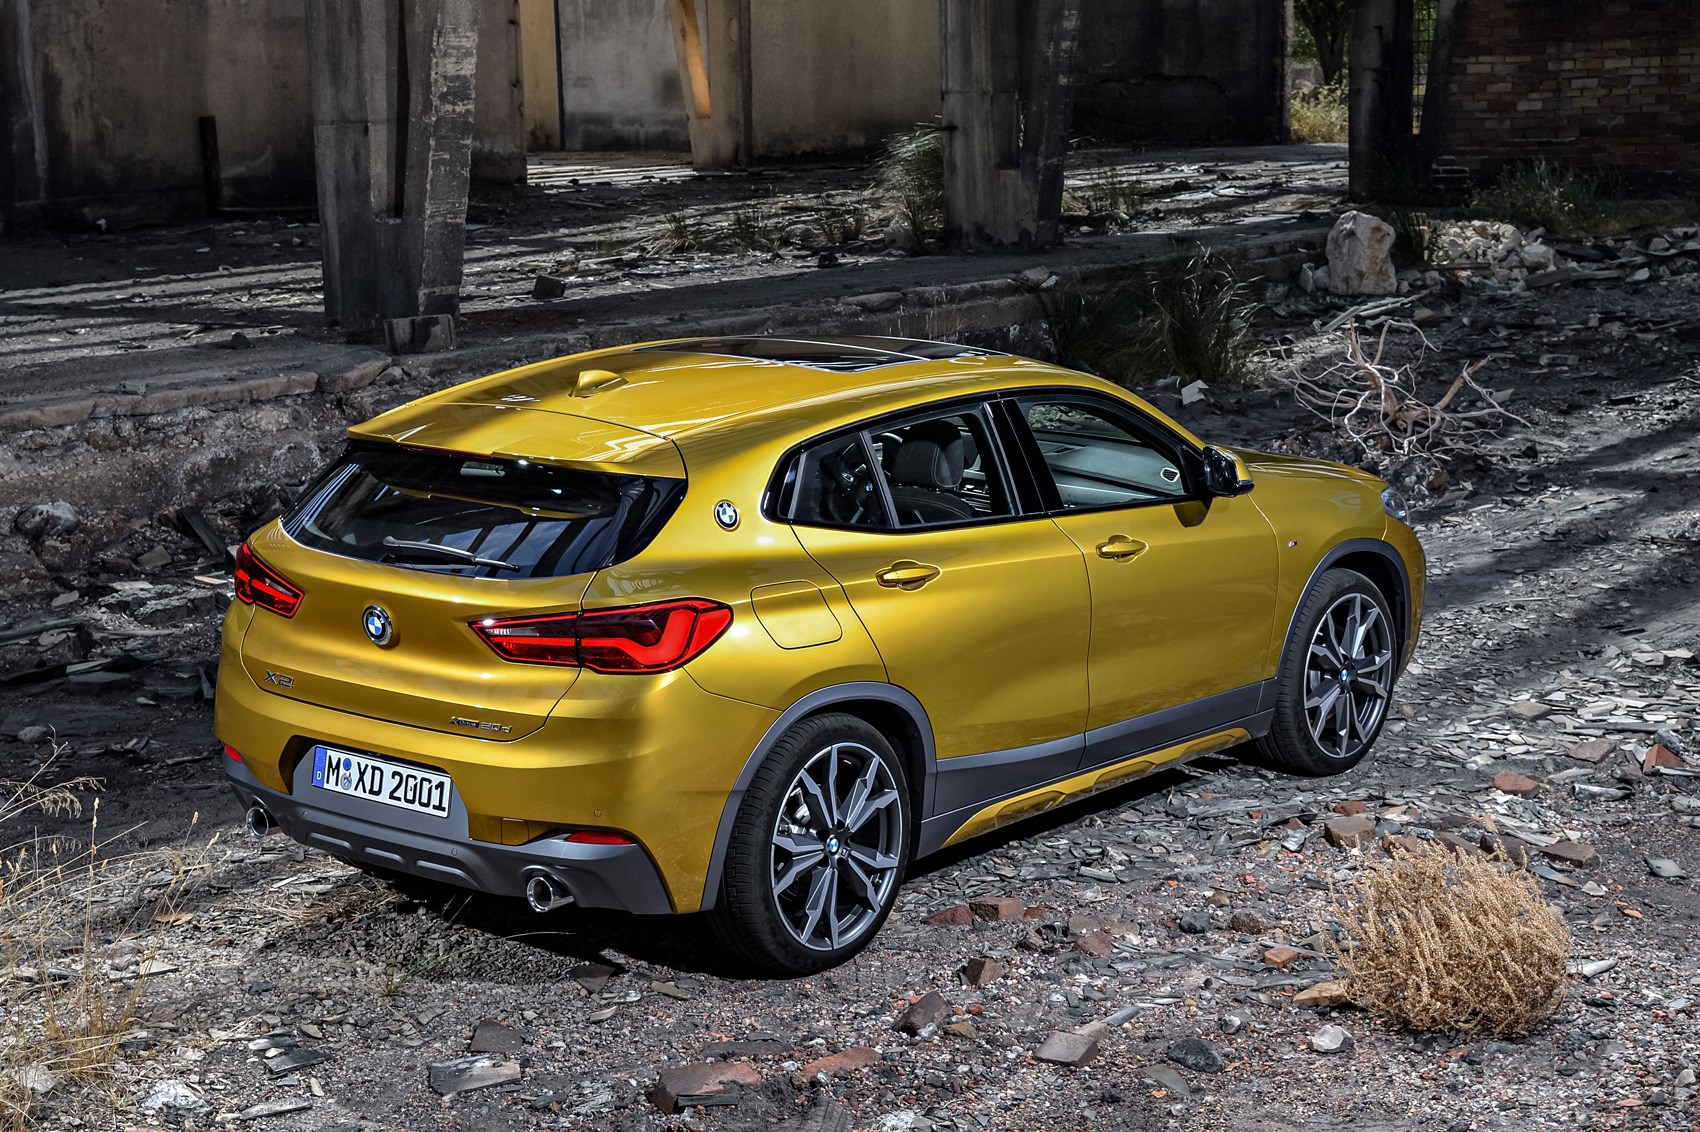 Ford Suv Models >> BMW X2 SUV: new crossover dubbed 'the cool X' revealed | CAR Magazine